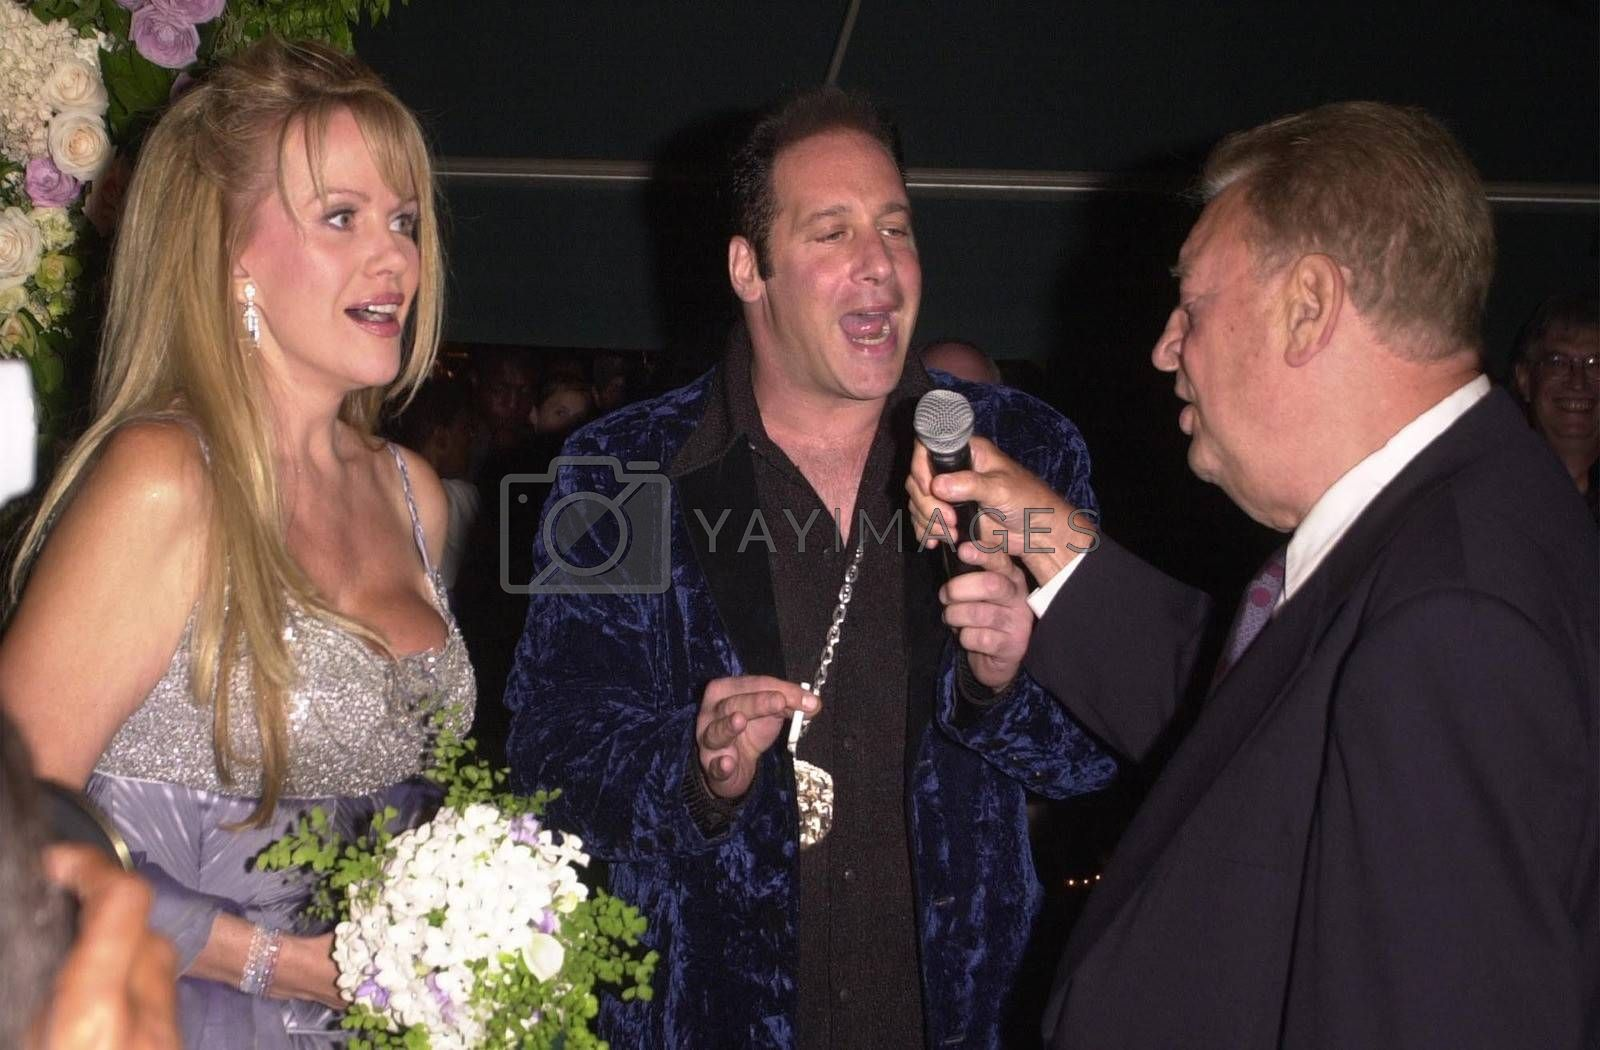 Andrew Dice Clay, Rodney Dangerfield and Joan Child at the premiere of My 5 Wives in Santa Monica. 08-28-00